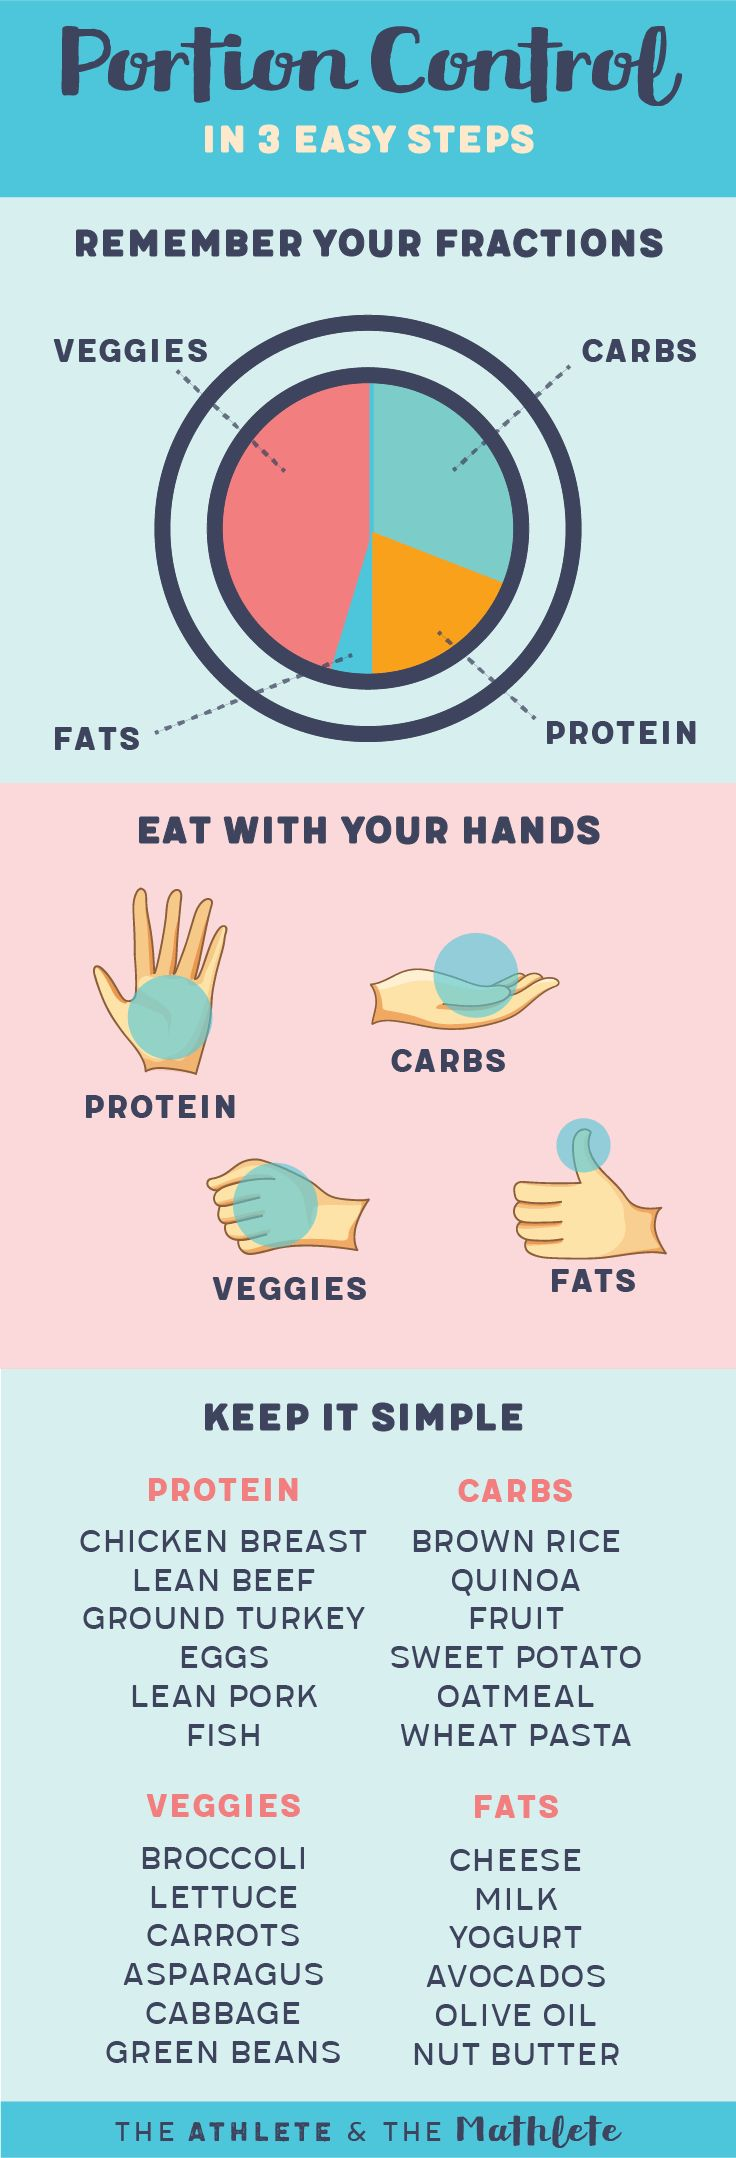 Portion control is essential to a healthy diet. But it doesn't have to be hard. These three easy steps will help you plan your meals the smart way. Click through for a free printout for your fridge!